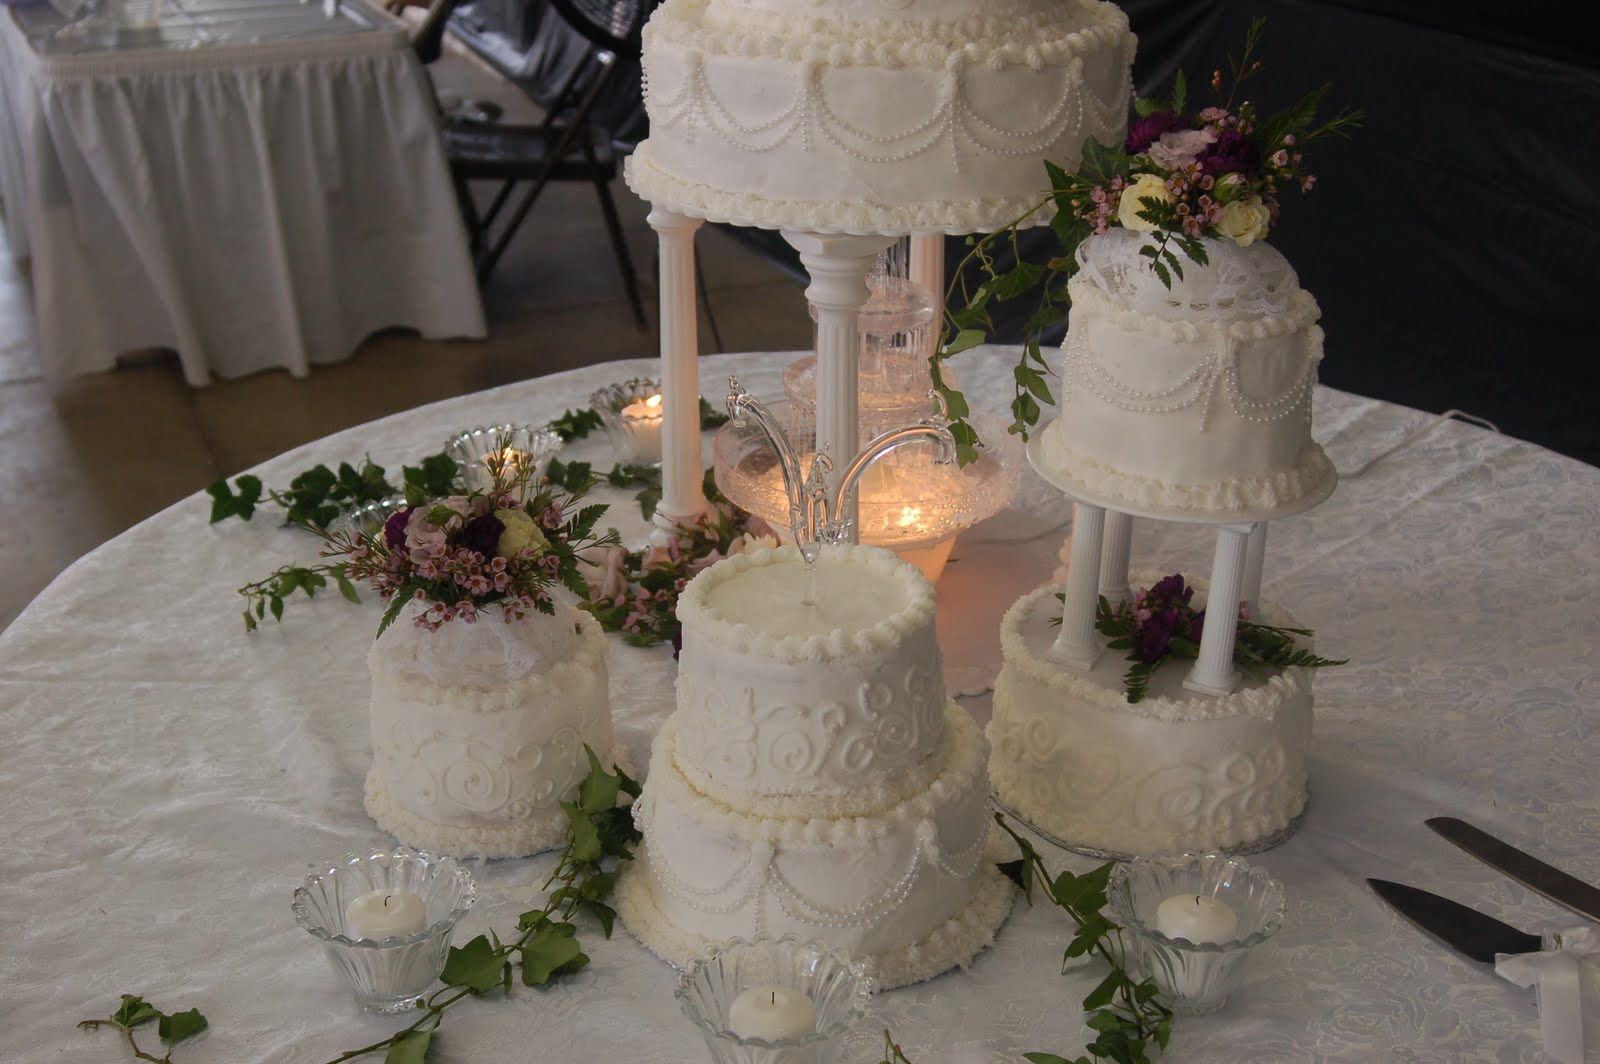 beautiful wedding cake tiers w